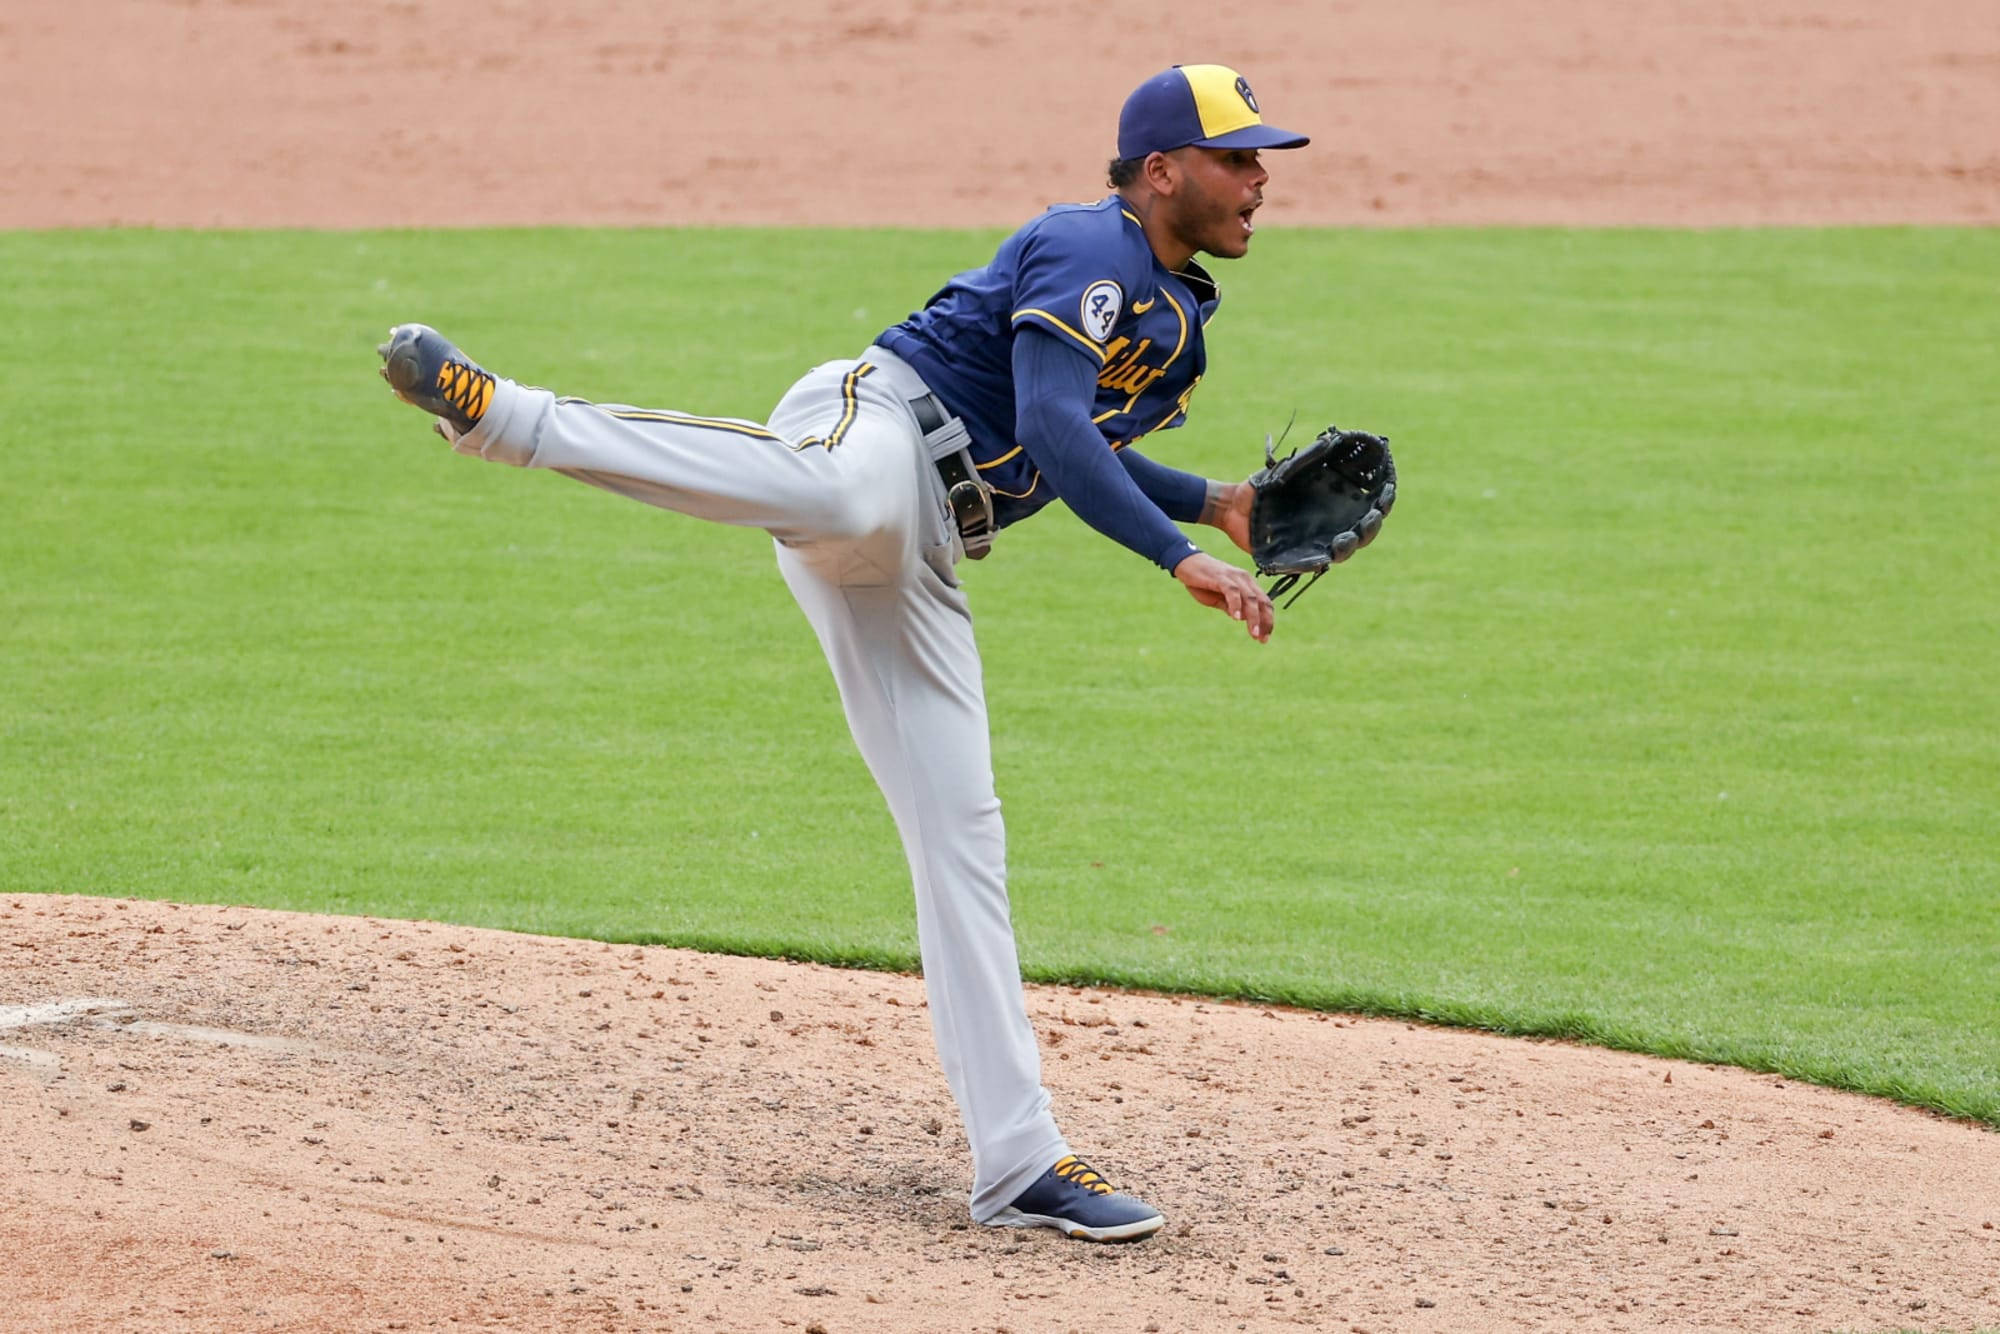 Brewers: Freddy Peralta Has Been Great, but Will He Be an All-Star?